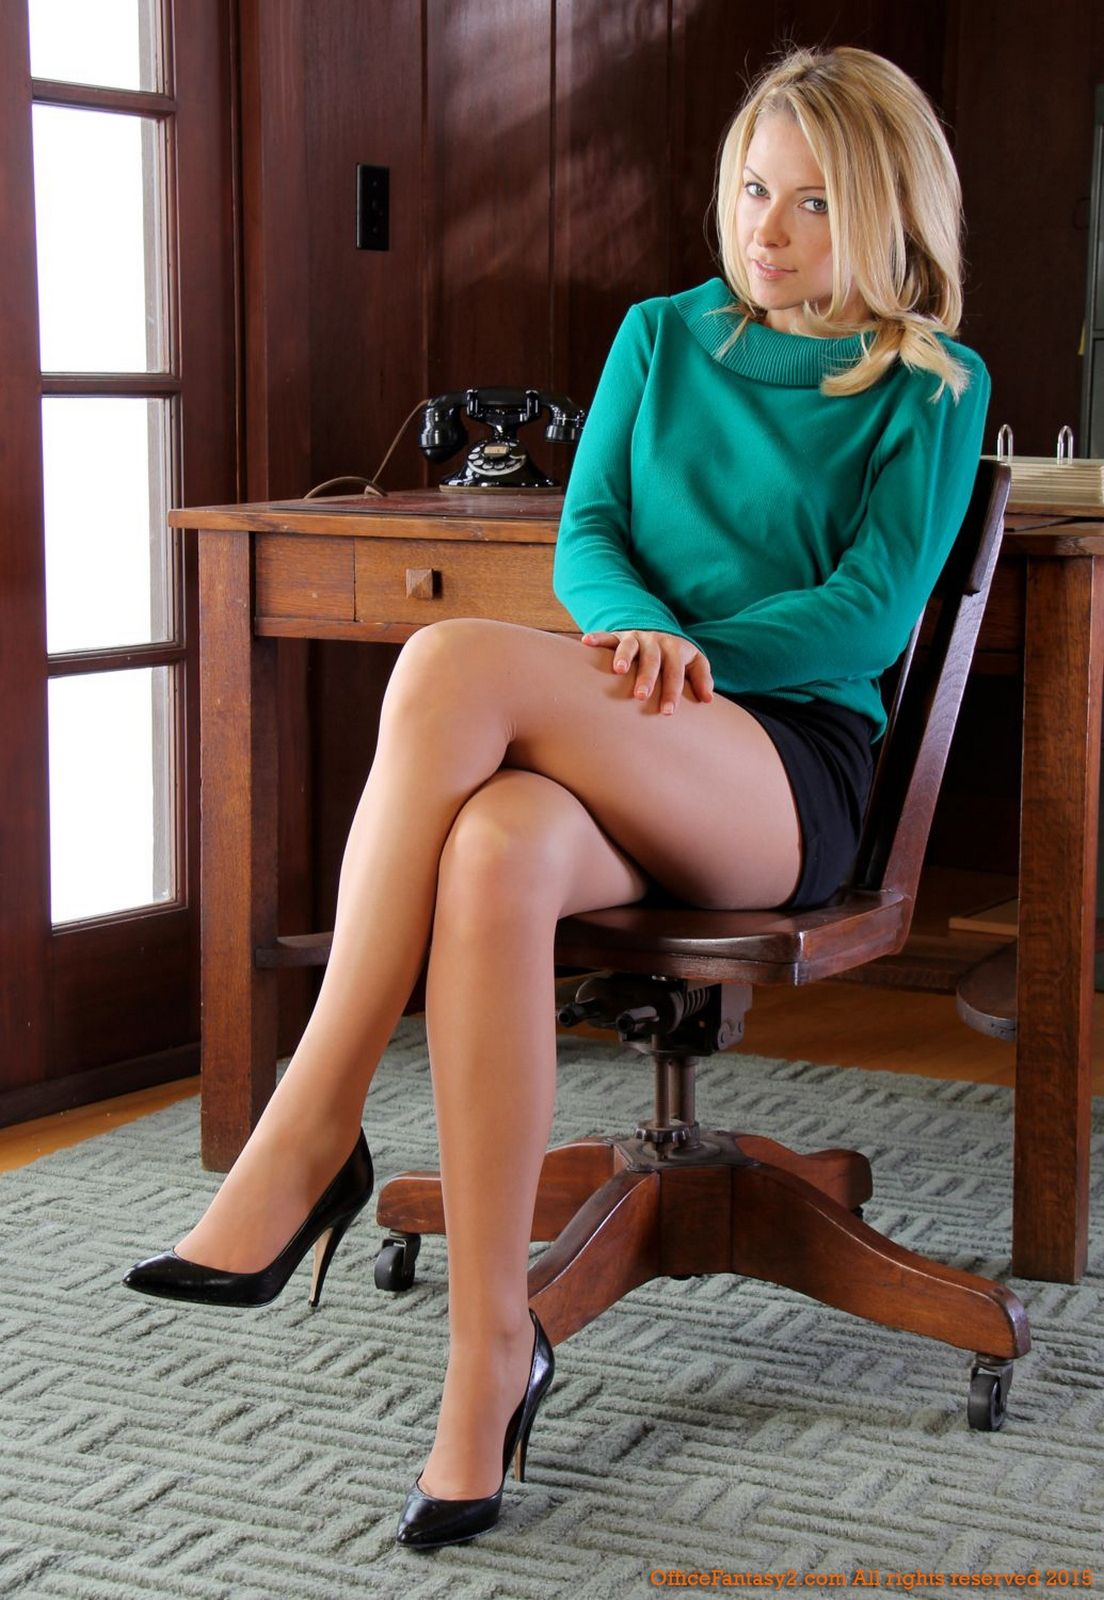 Pin on Gorgeous Legs